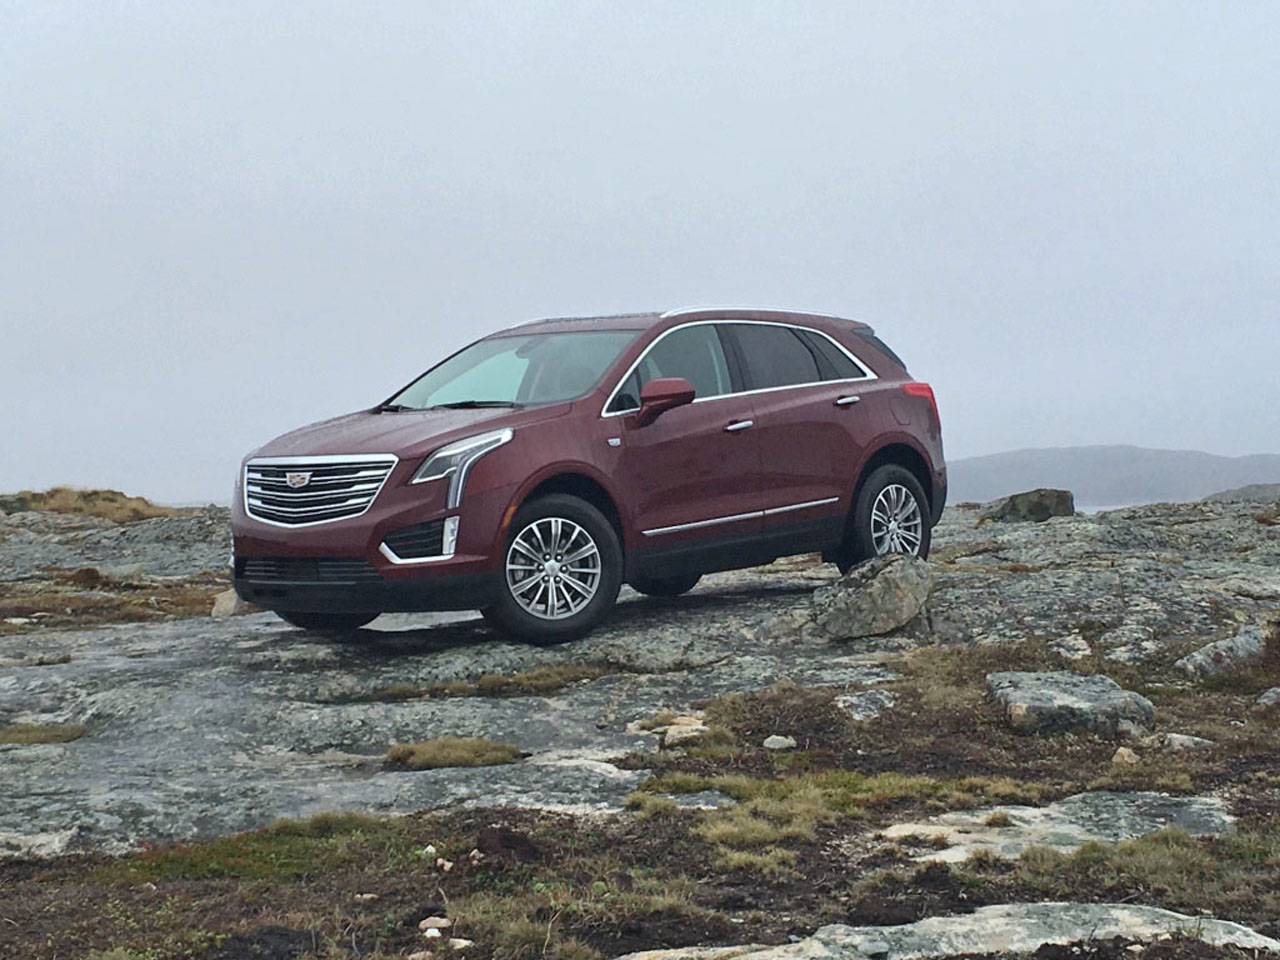 2017 Cadillac Xt5 Road Test Review The Car Magazine